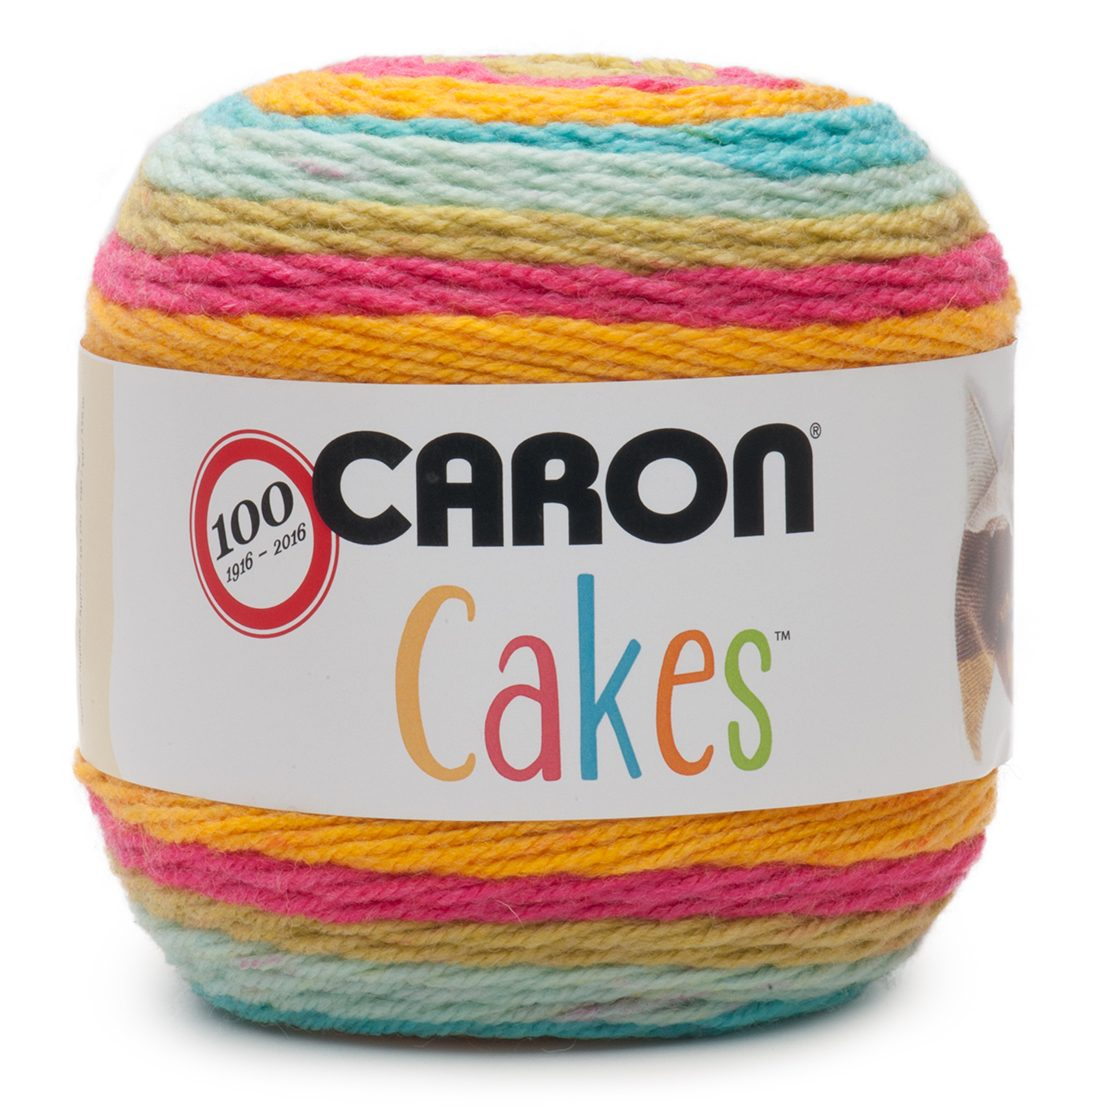 NEW Caron Cakes Rainbow Sherbet Yarn - one of 8 new colorways for 2017 plus free patterns featuring the original Caron Cakes colors